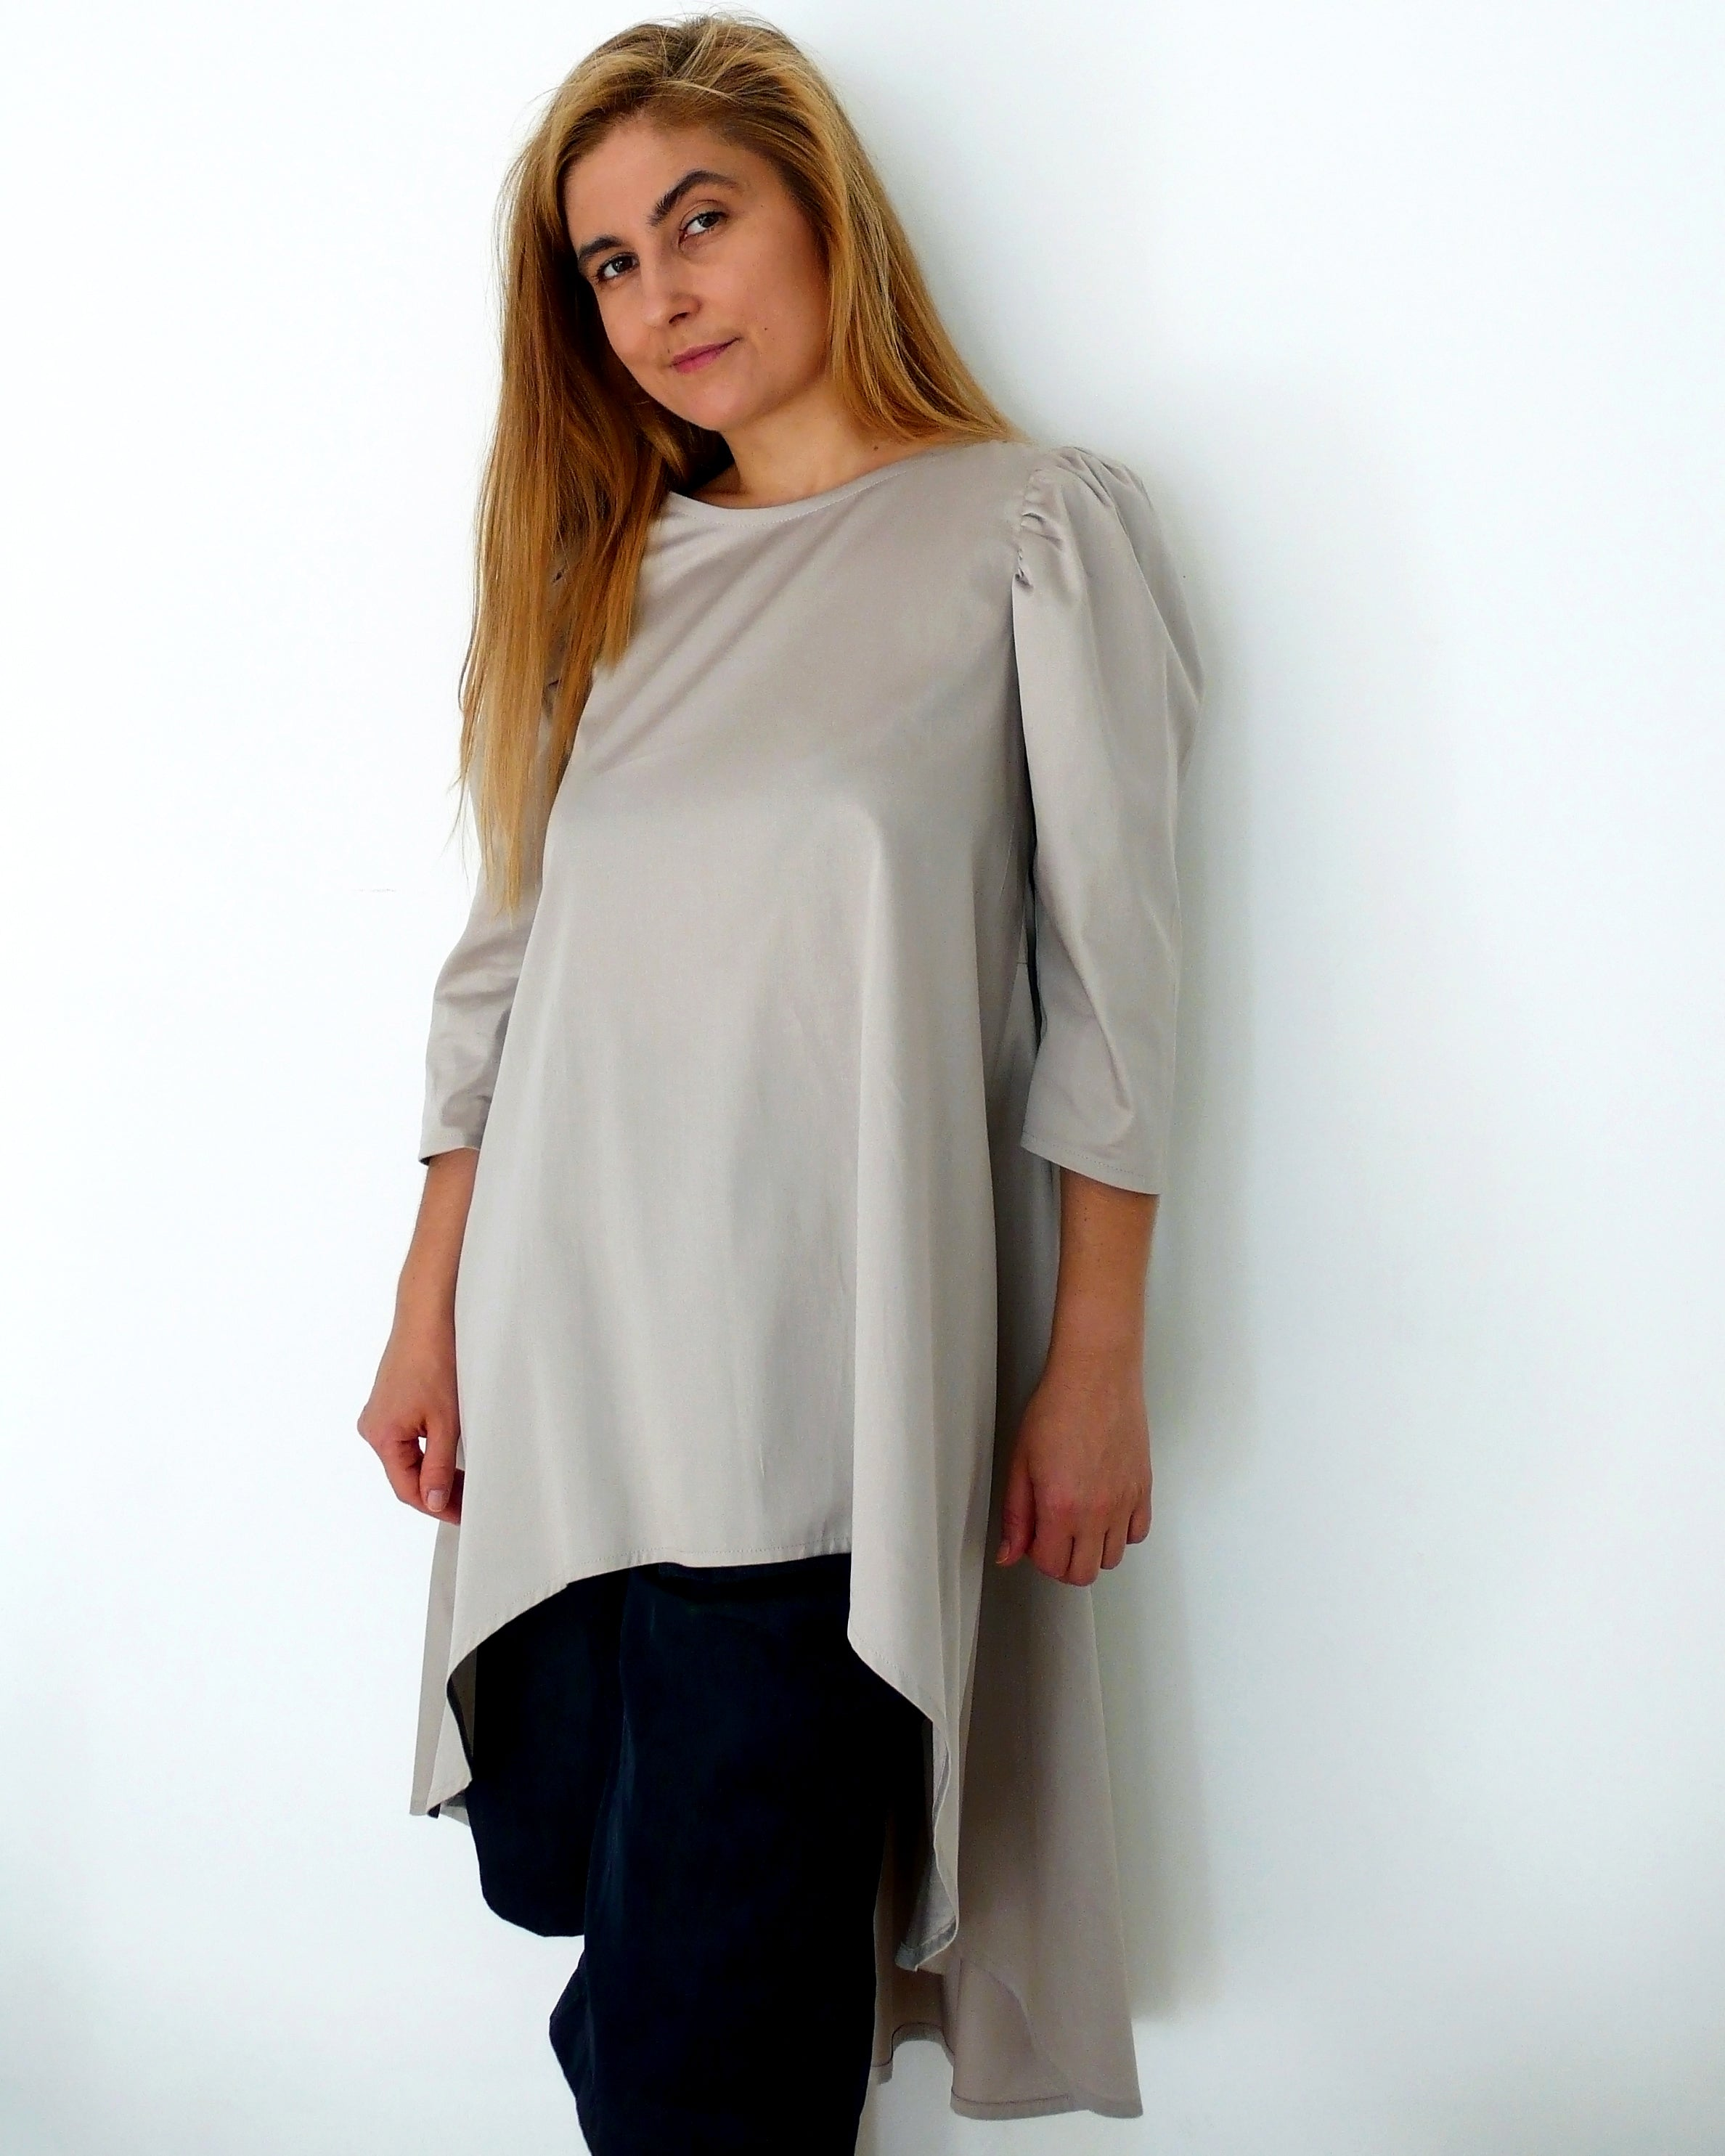 Digital Sewing Pattern N.80 - Woven loose silhouette TUNIC with puffed sleeve